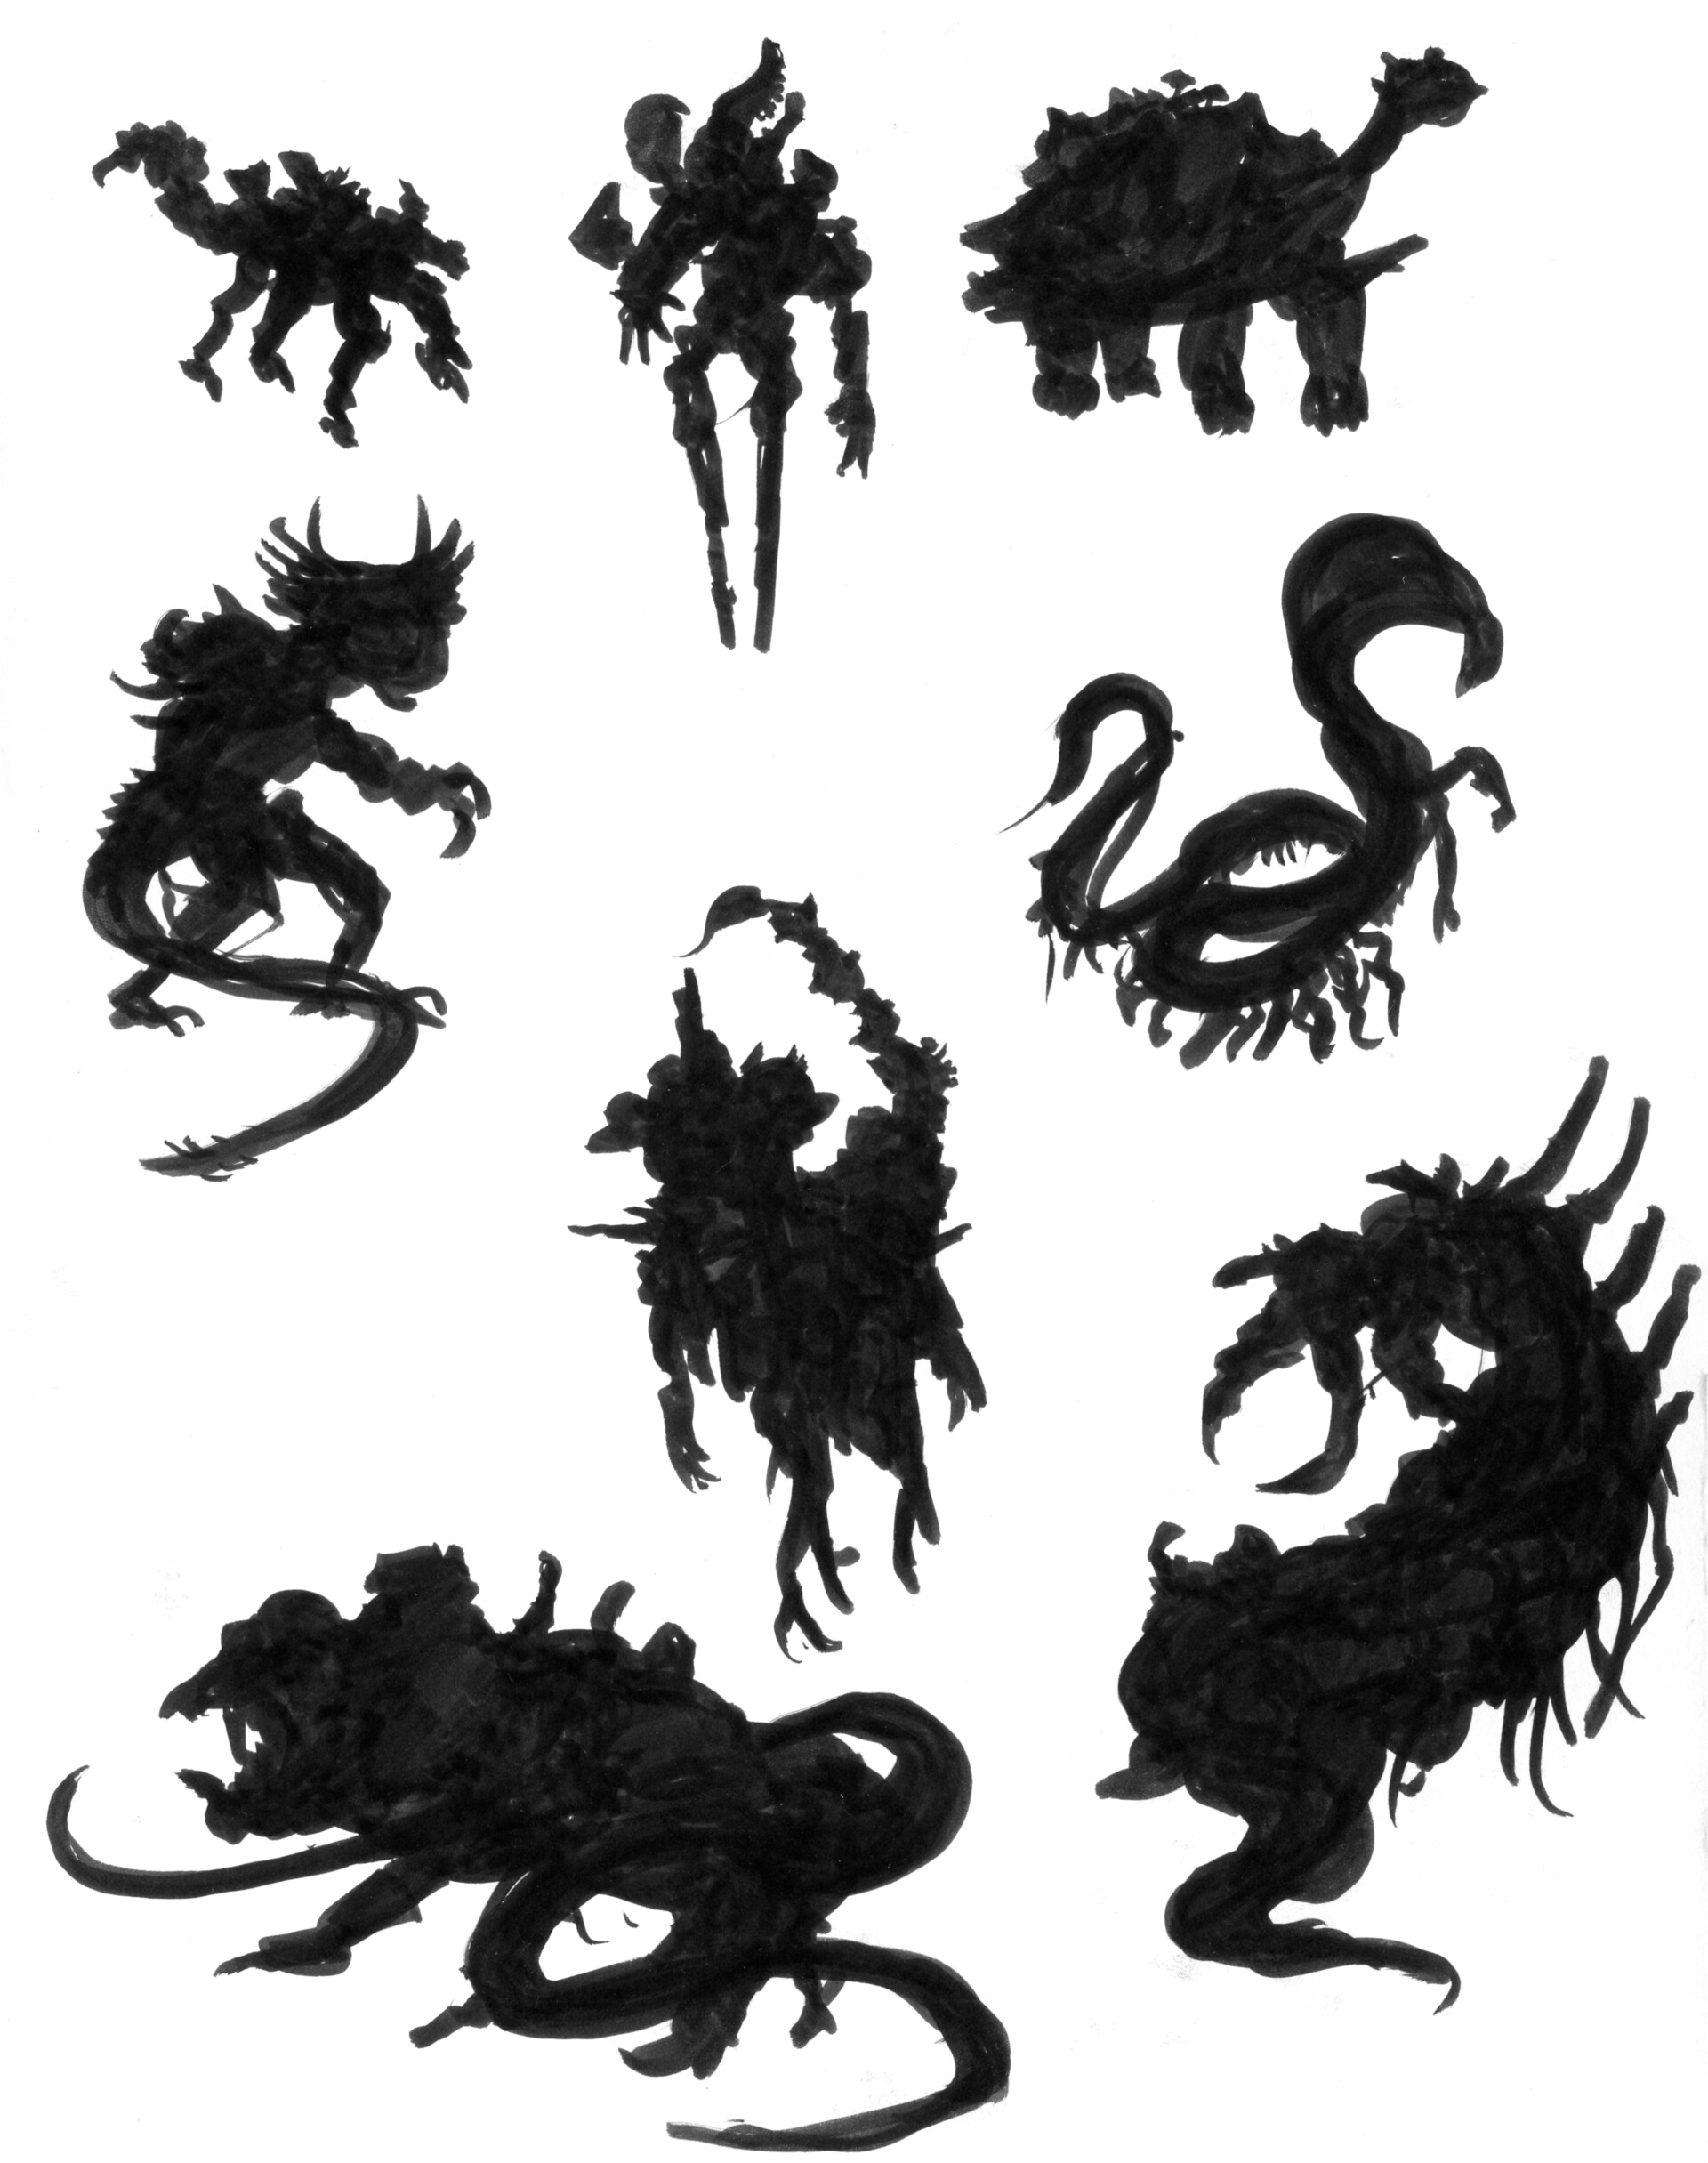 Christian herman pm creature phases silhouettes exploratory